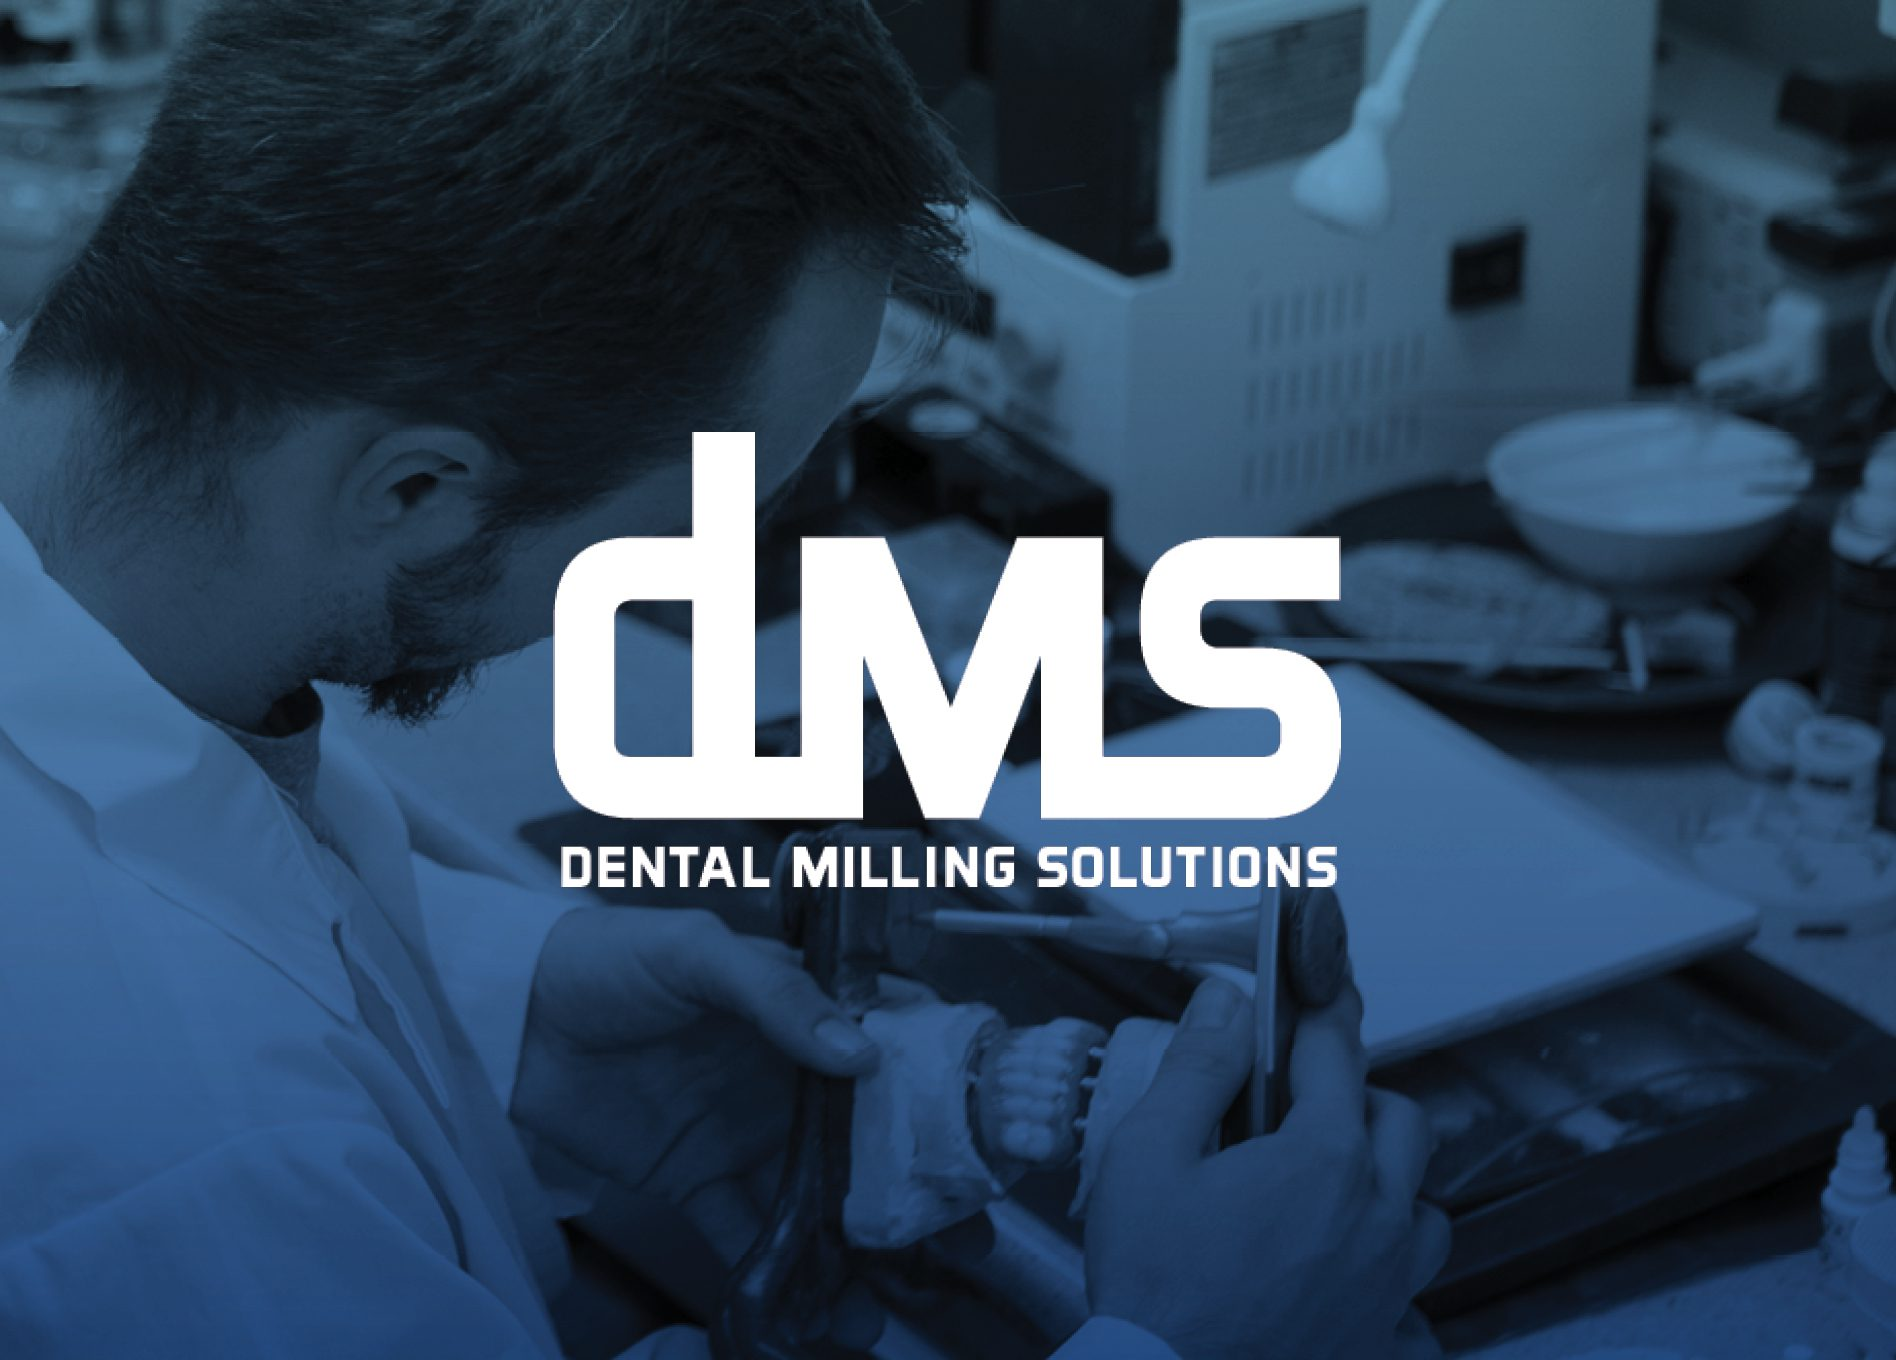 dental milling solutions logo